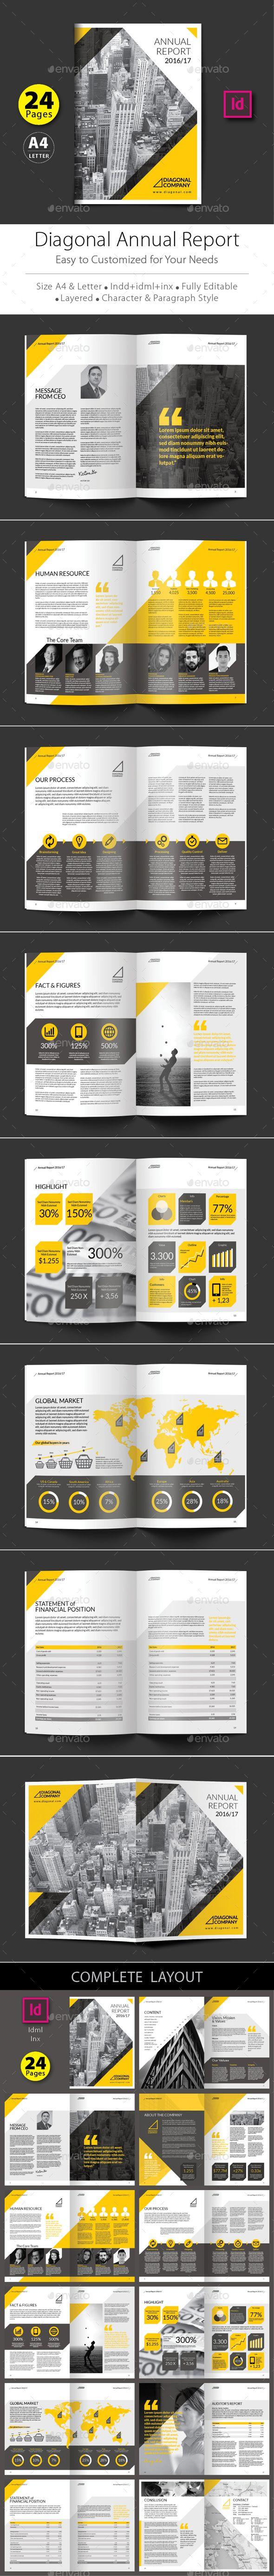 A4 24 Pages Diagonal Annual Report Design Template PSD. Download here: http://graphicriver.net/item/diagonal-annual-report-design-template/15904860?ref=ksioks